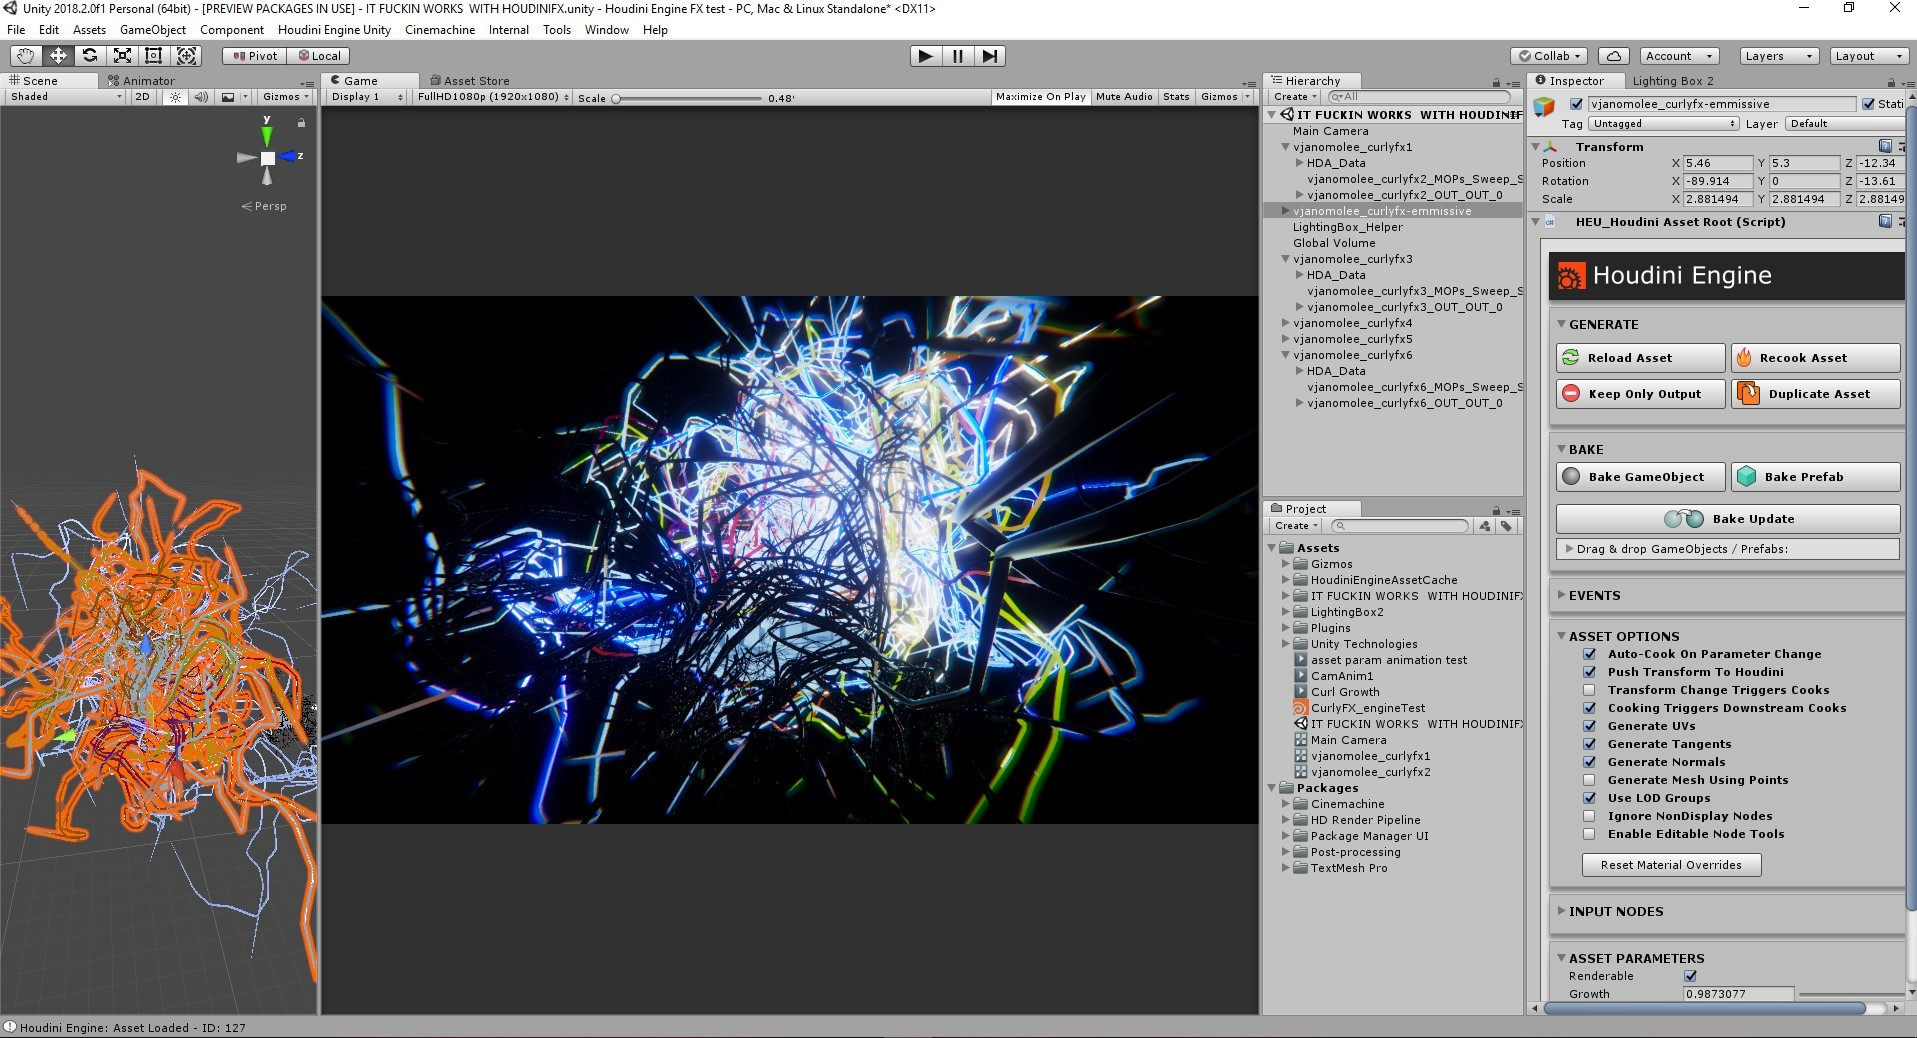 ArtStation - Curl Noise MOP experiments in Houdini Engine in Unity